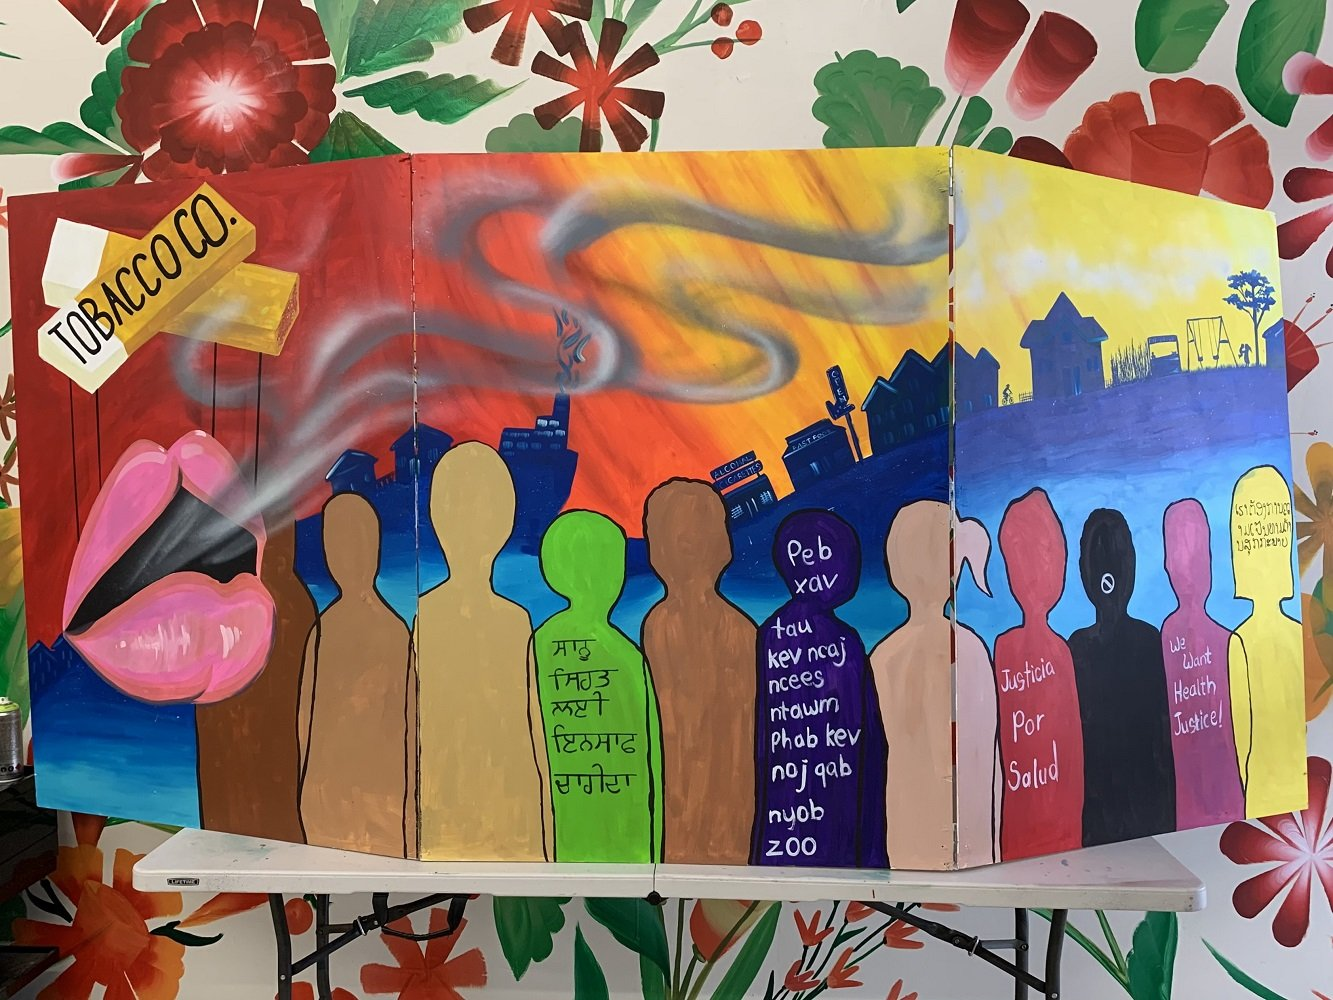 mercedcountytimes.com: Mural Art Used To Create 'Health Justice' Awareness — Merced County Times